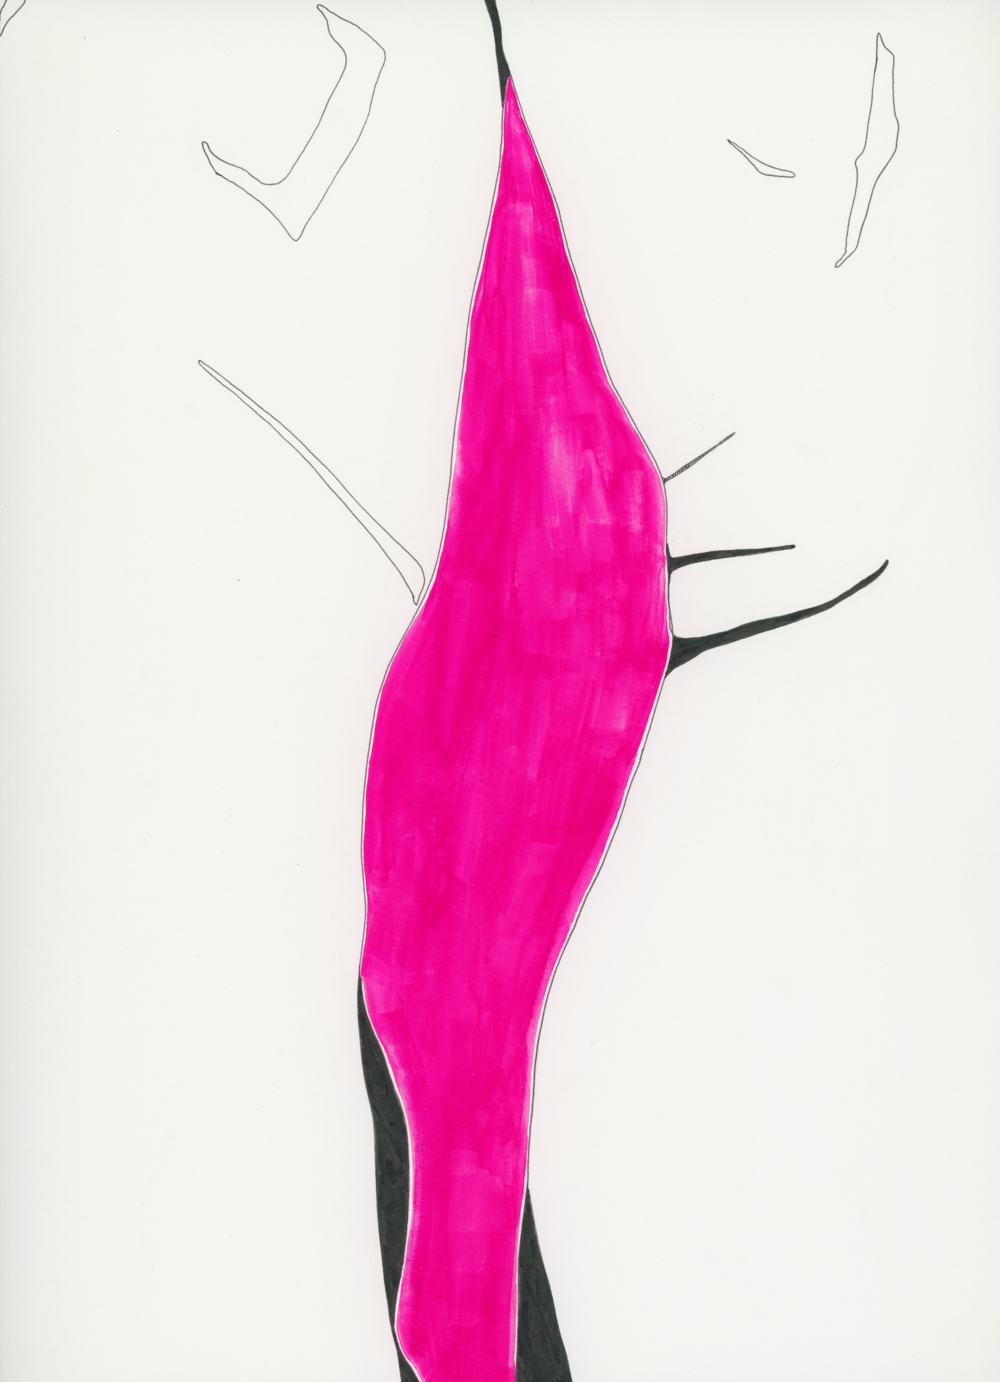 Pink Streak   Ink and gouache on paper